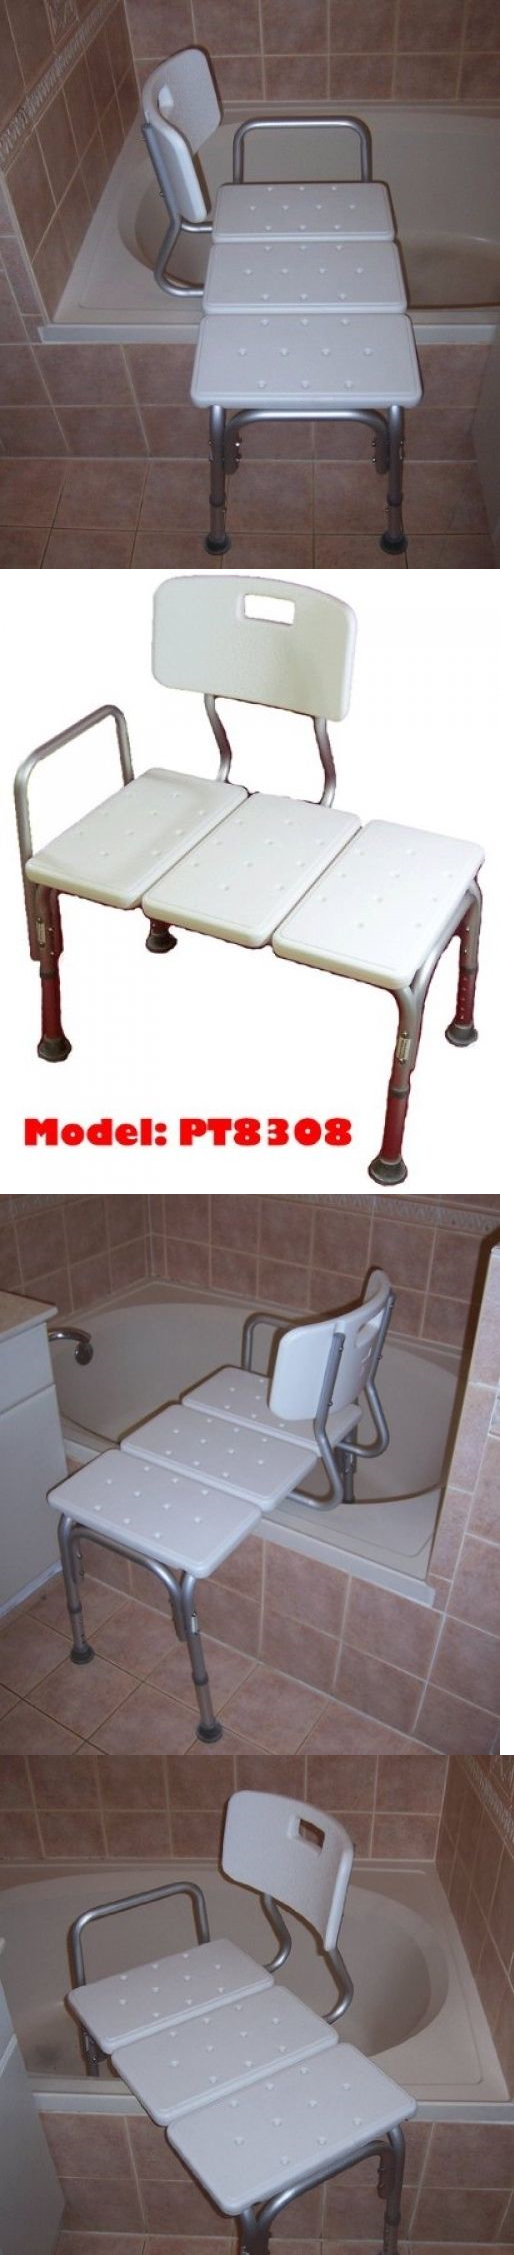 Shower And Bath Seats: Shower Chairs For Elderly Medical Disabled  Handicapped Bath Bathtub Seat Bench